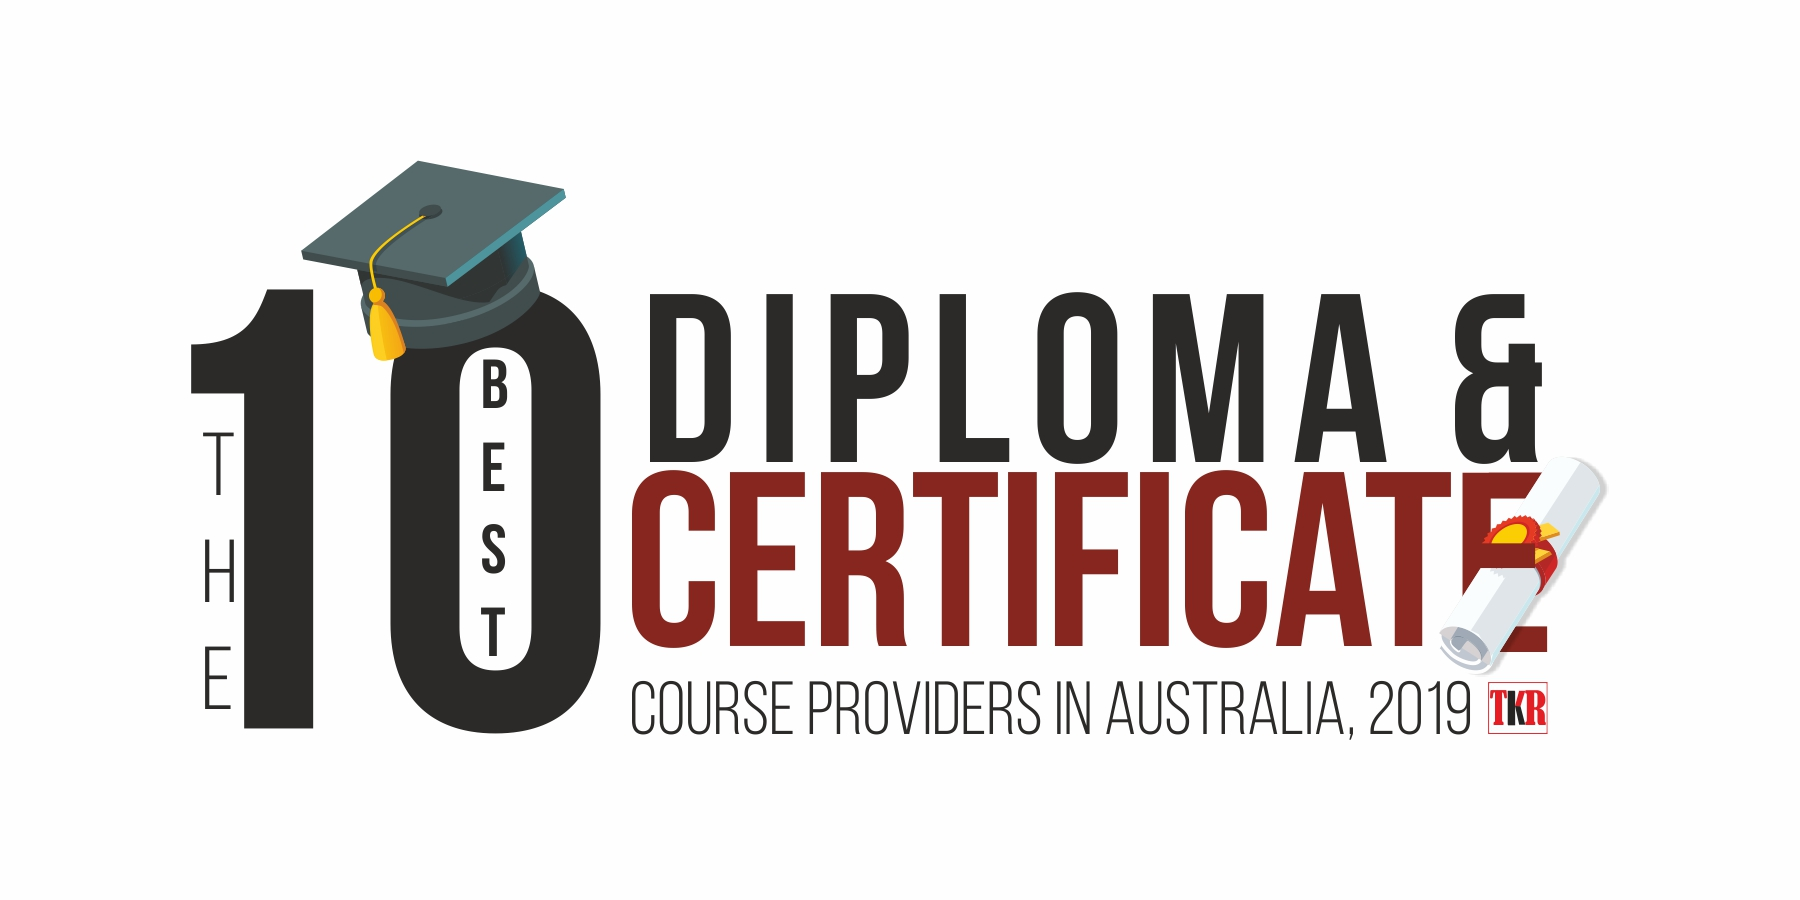 The_10_Best_Diploma_and_Certificate_providers_in_Australia_2019_JPG